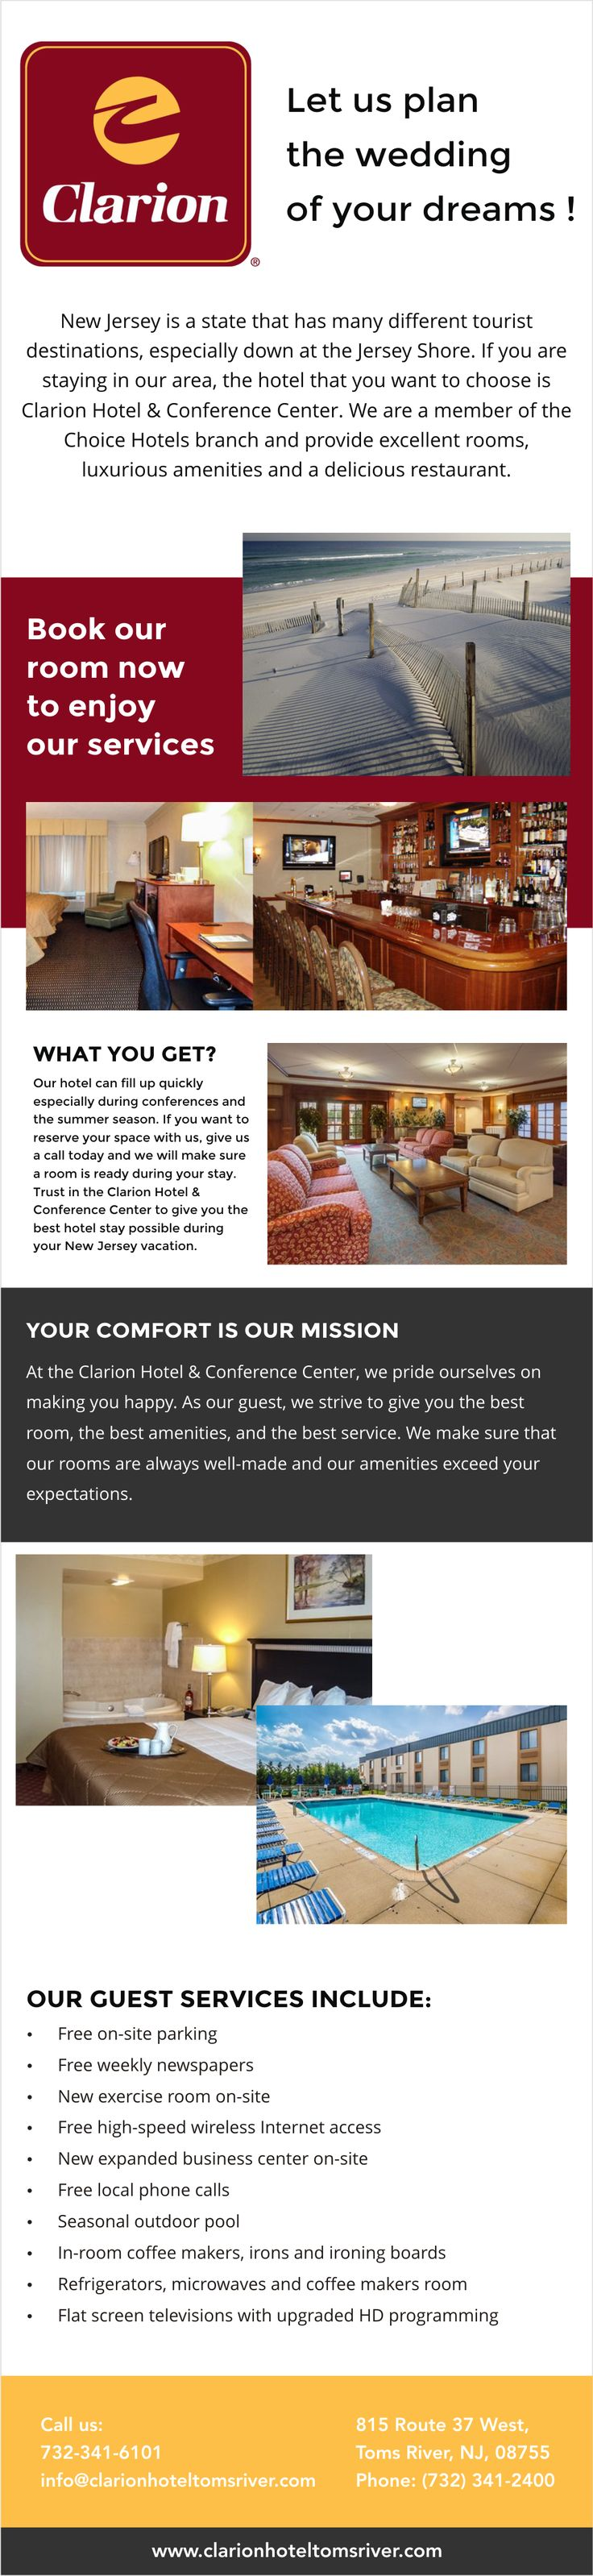 NJ has many different tourist destinations, especially down at the Jersey Shore. If you are staying in our area, the hotel that you want to choose is Clarion Hotel & Conference Center (http://clarionhoteltomsriver.com). We are a member of the Choice Hotels branch and provide excellent rooms, luxurious amenities and a delicious restaurant.  We can host your business meeting, corporate meeting, corporate event, or business conference any day of the week in Toms River NJ. Our award winning…